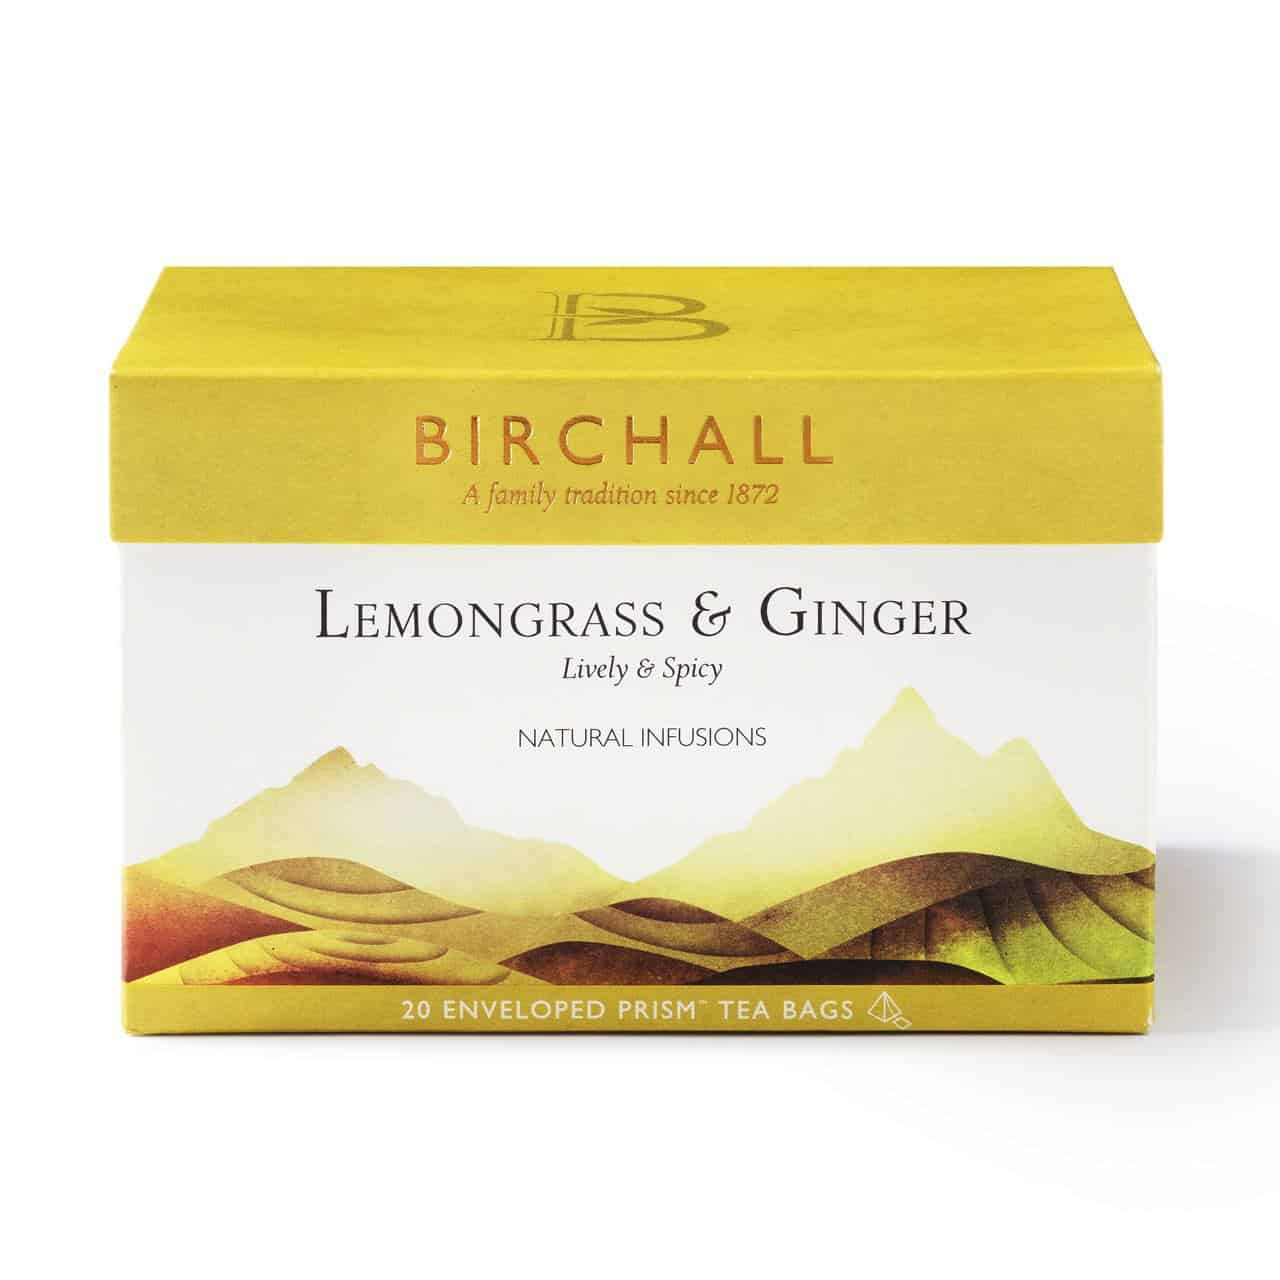 Birchall Lemongrass & Ginger - 20 Enveloped Prism Tea Bags